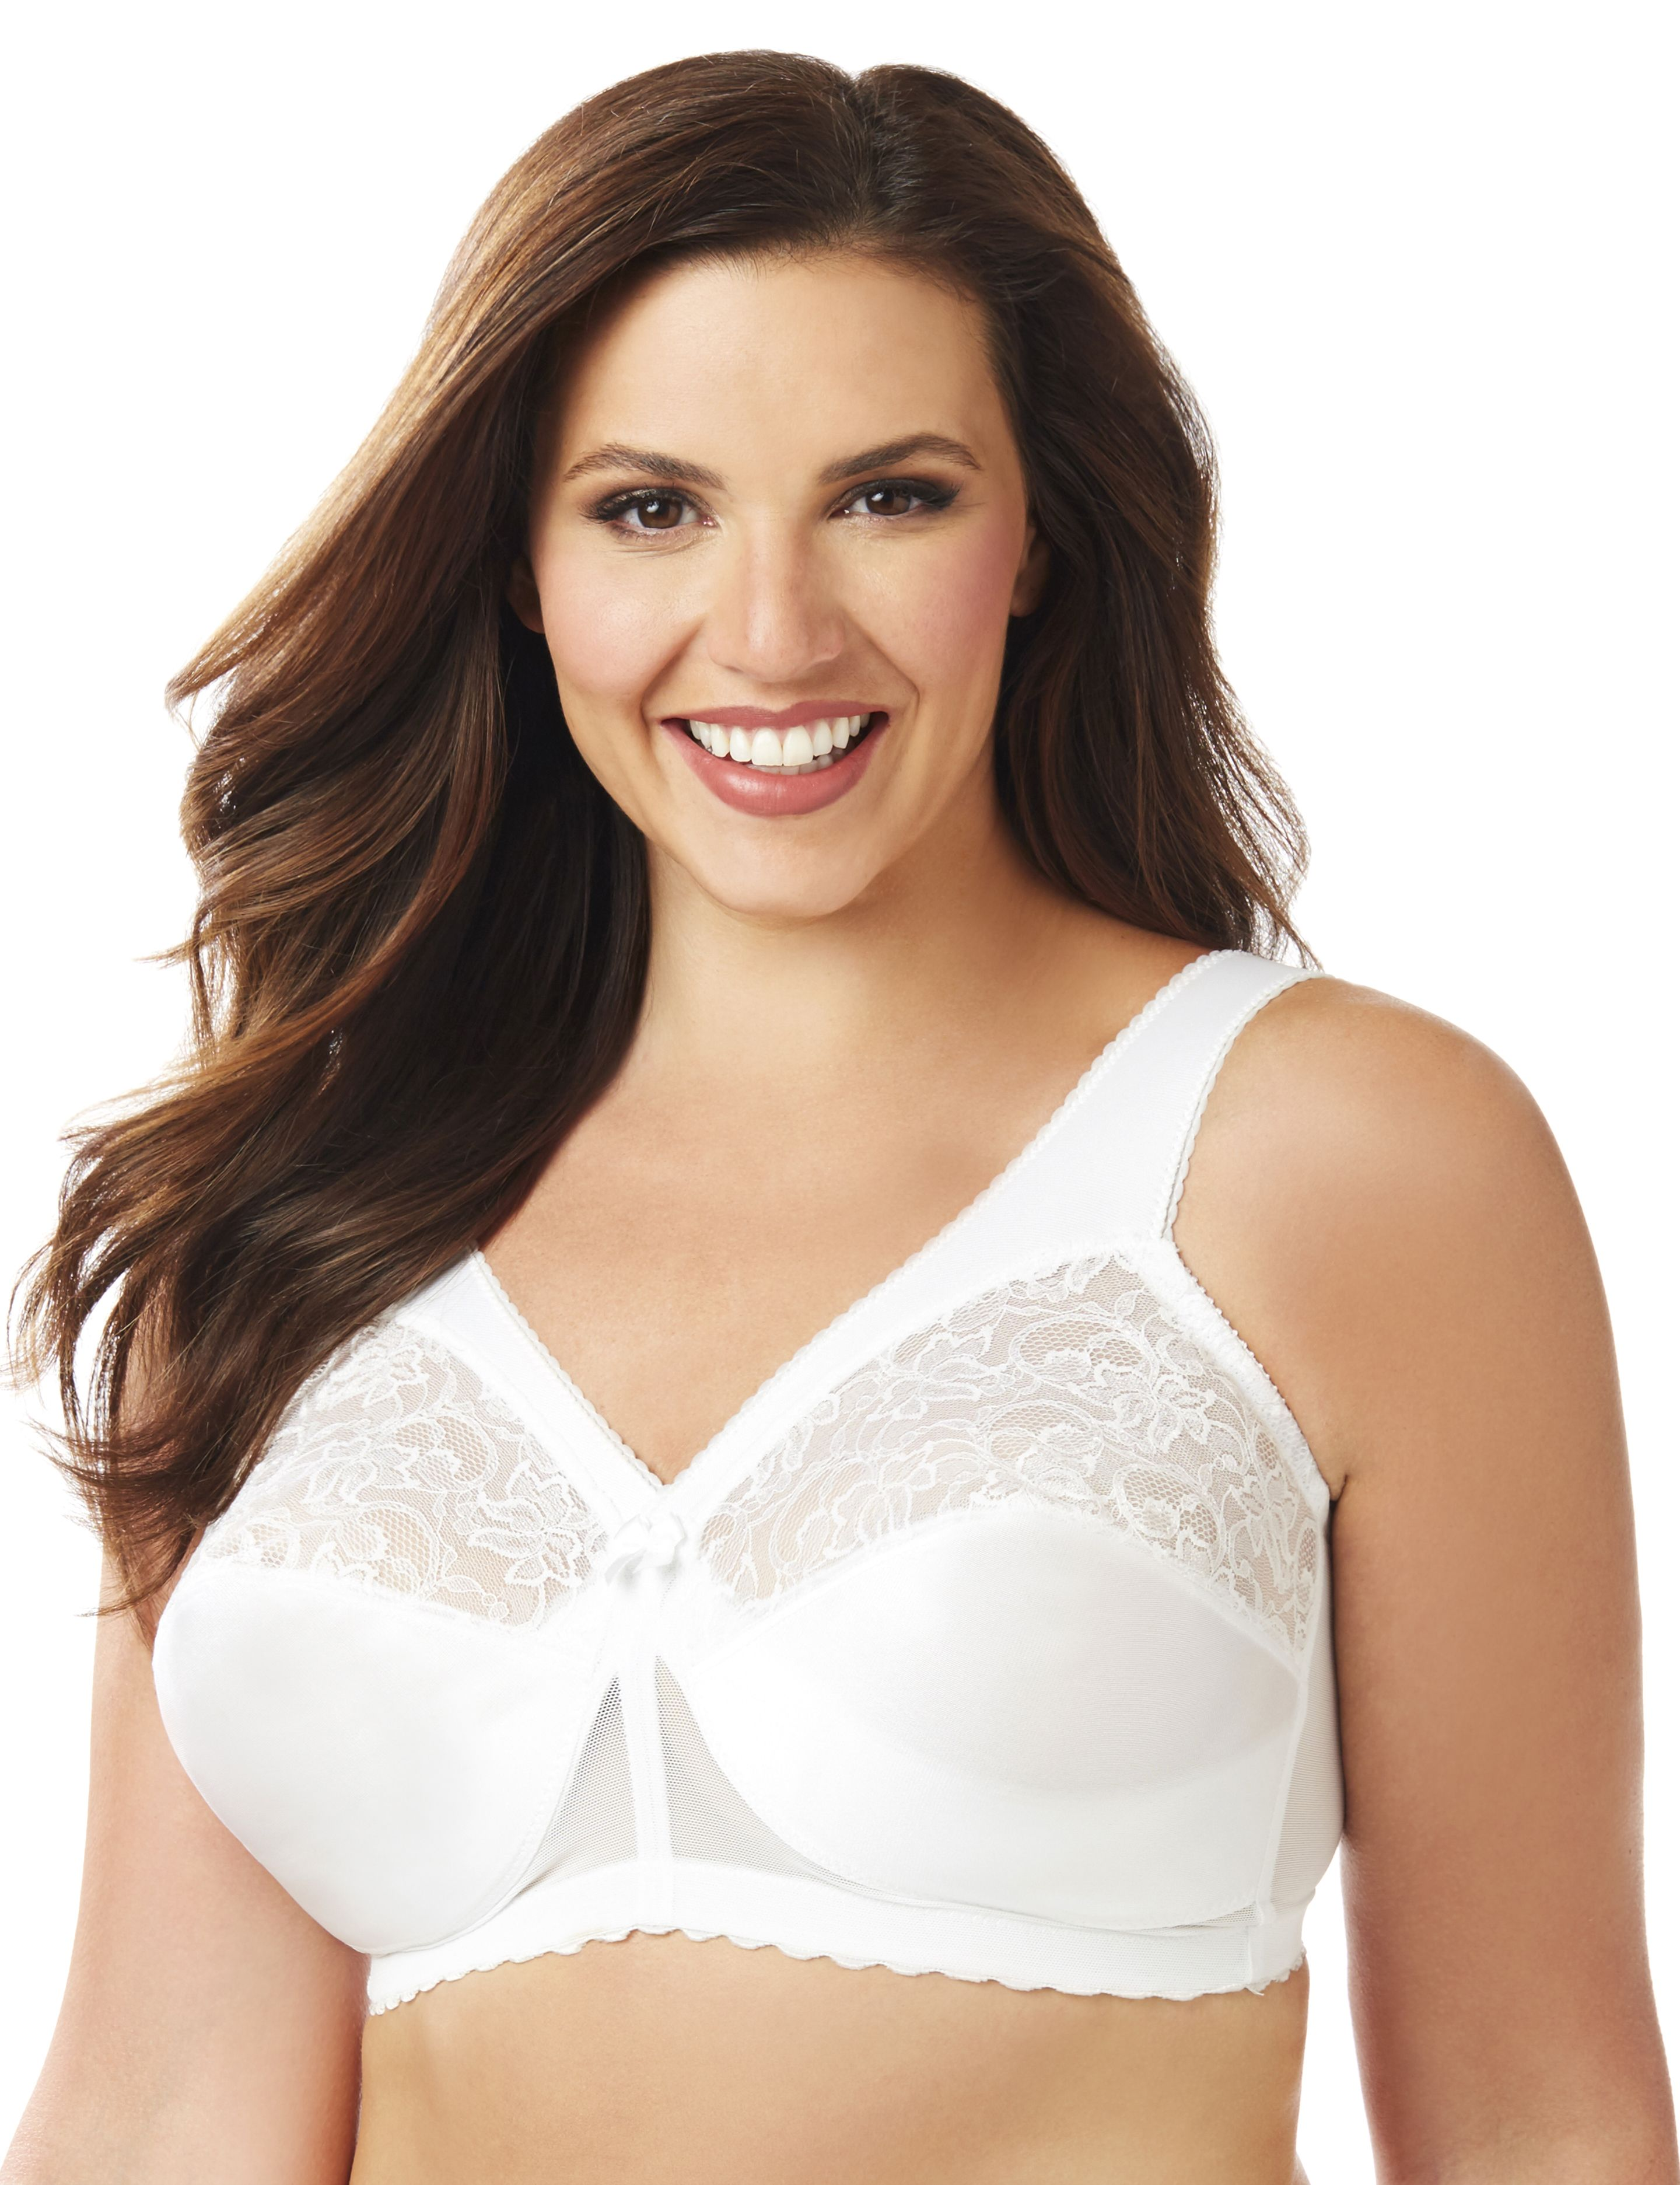 Glamorise 1000 Magic Lift No-Wire Bra Glamorise 1000 Magic Lift No-Wire Bra MP-000156879